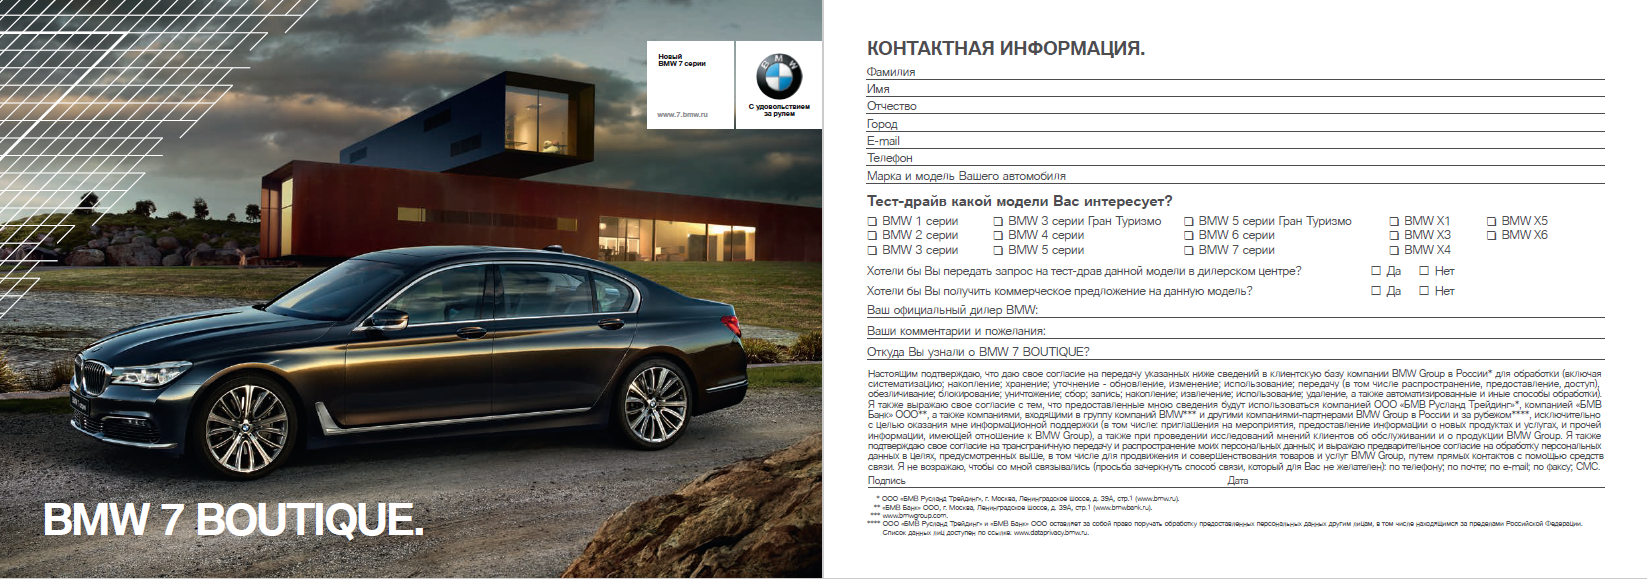 reg form for BMW